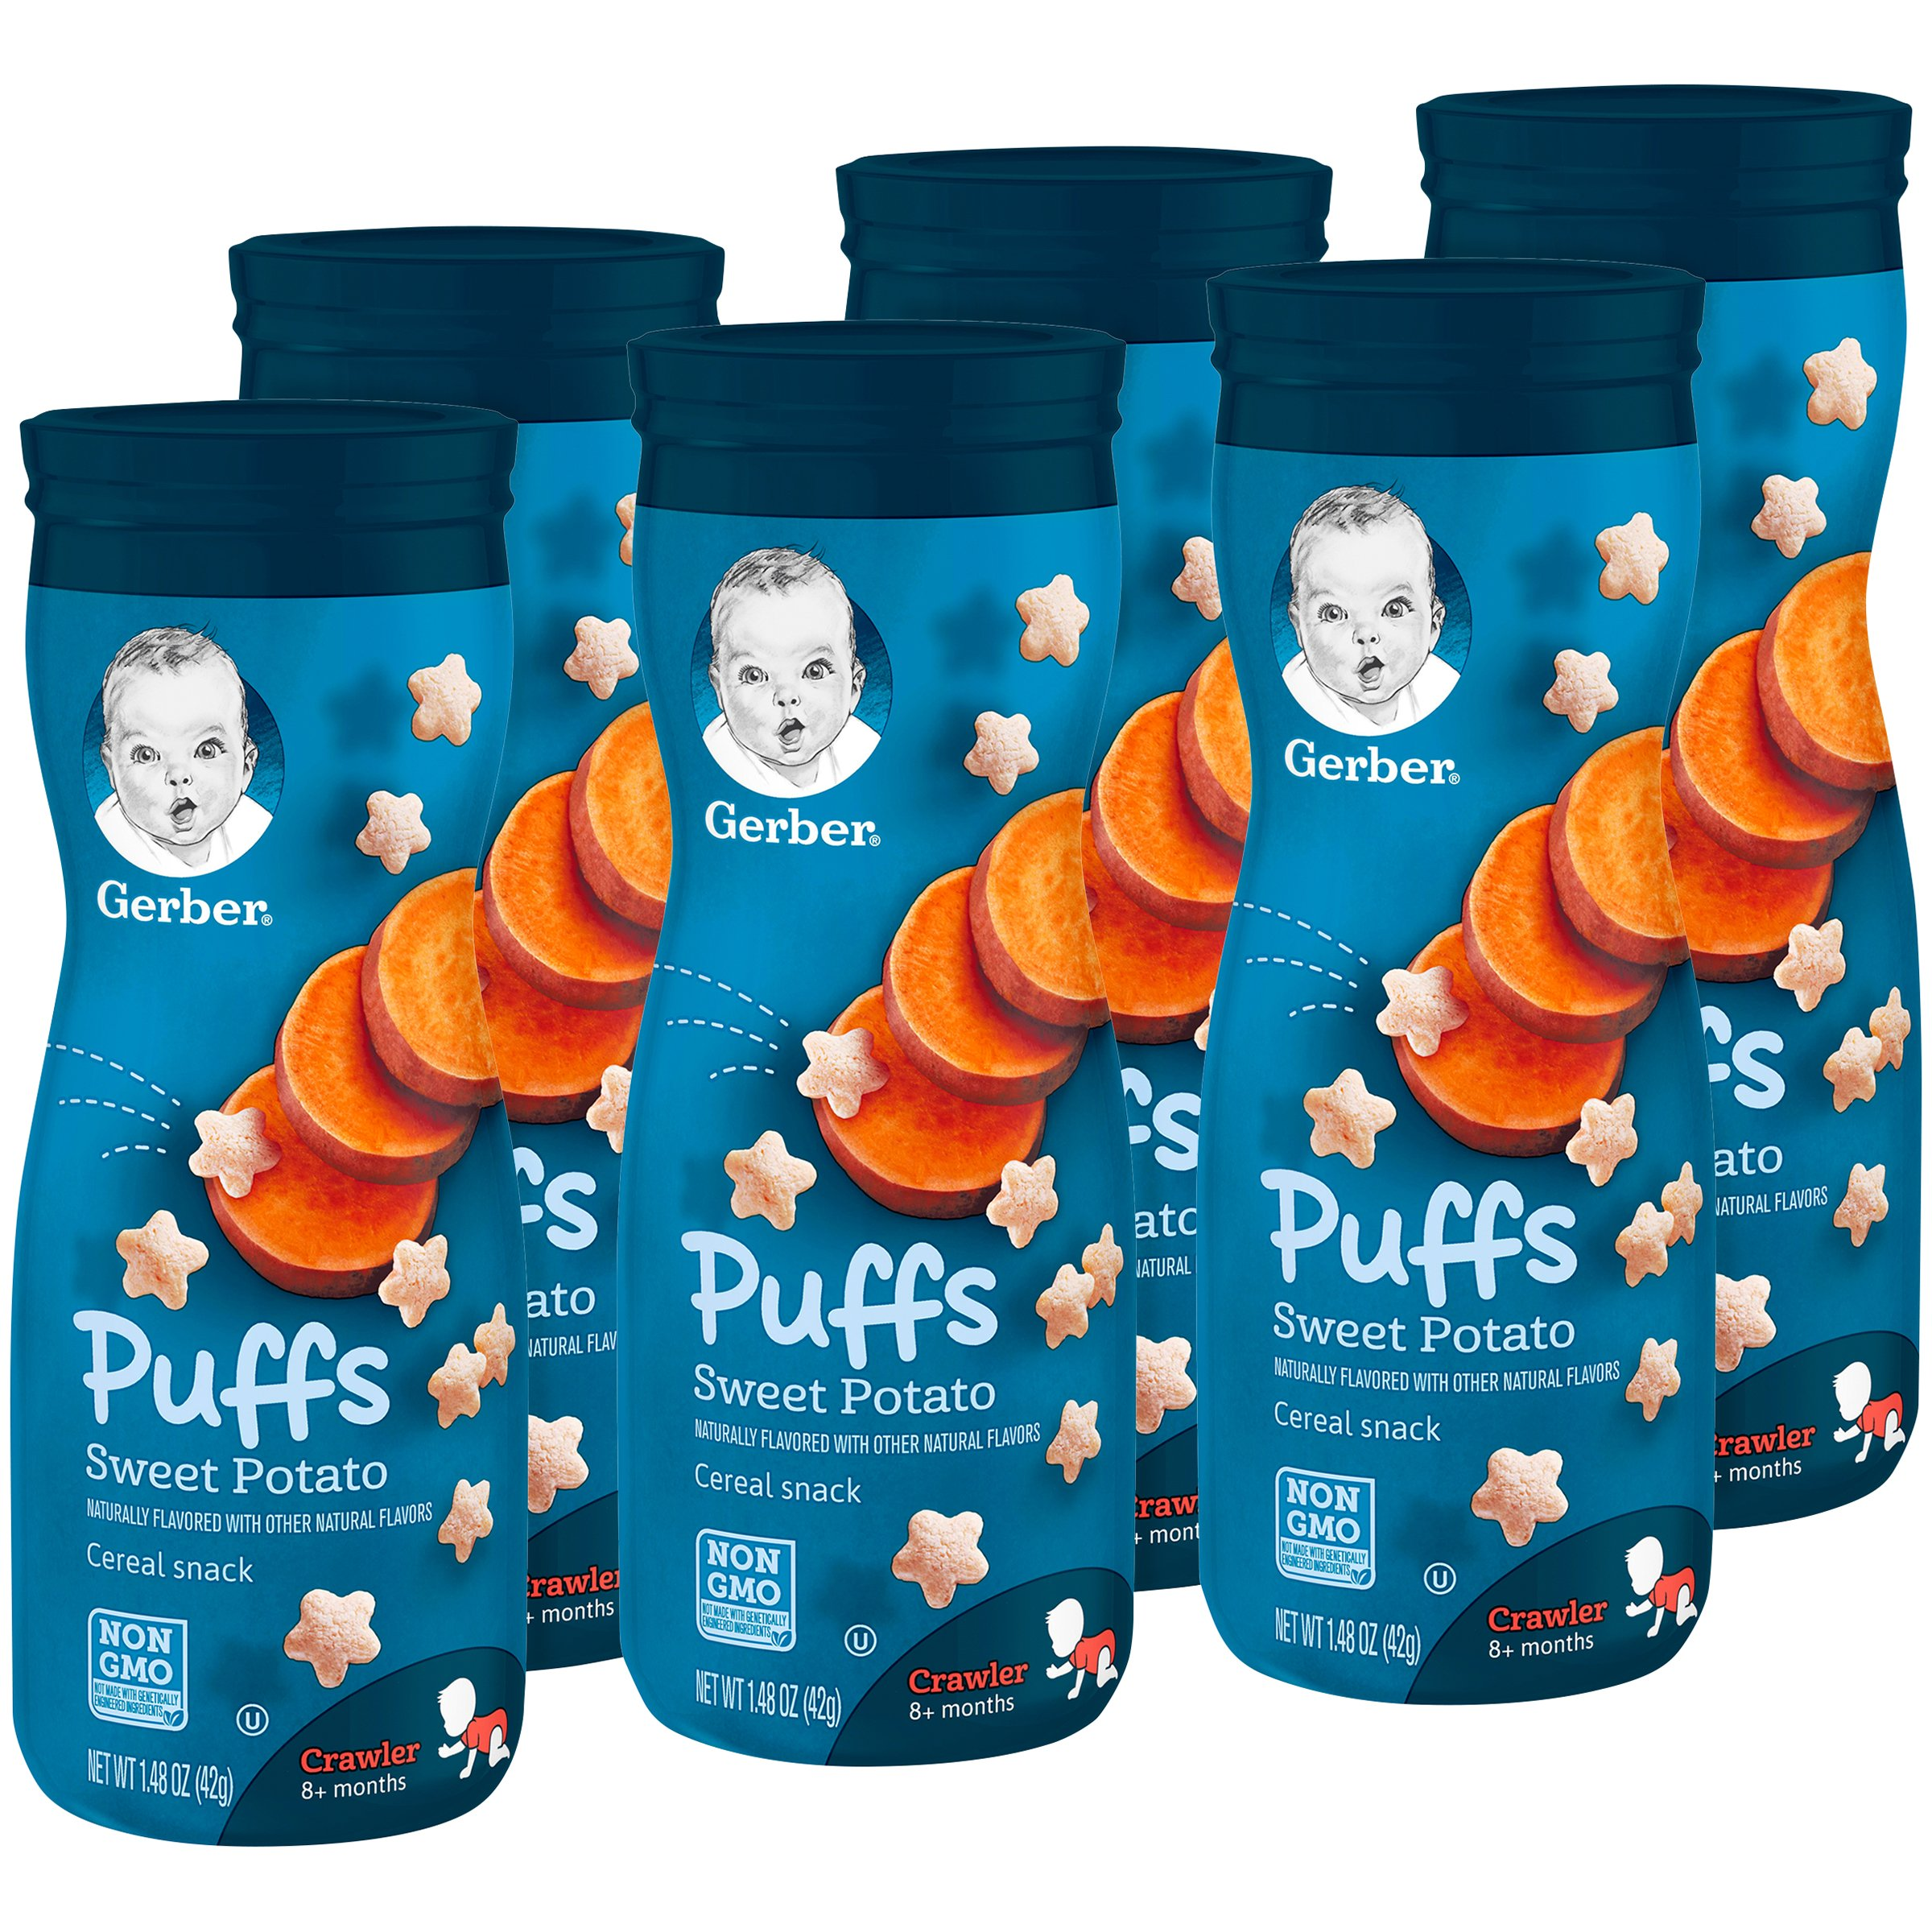 Gerber Puffs Cereal Snack, Sweet Potato, Naturally Flavored with Other Natural Flavors, 1.48 Ounce, 6 Count